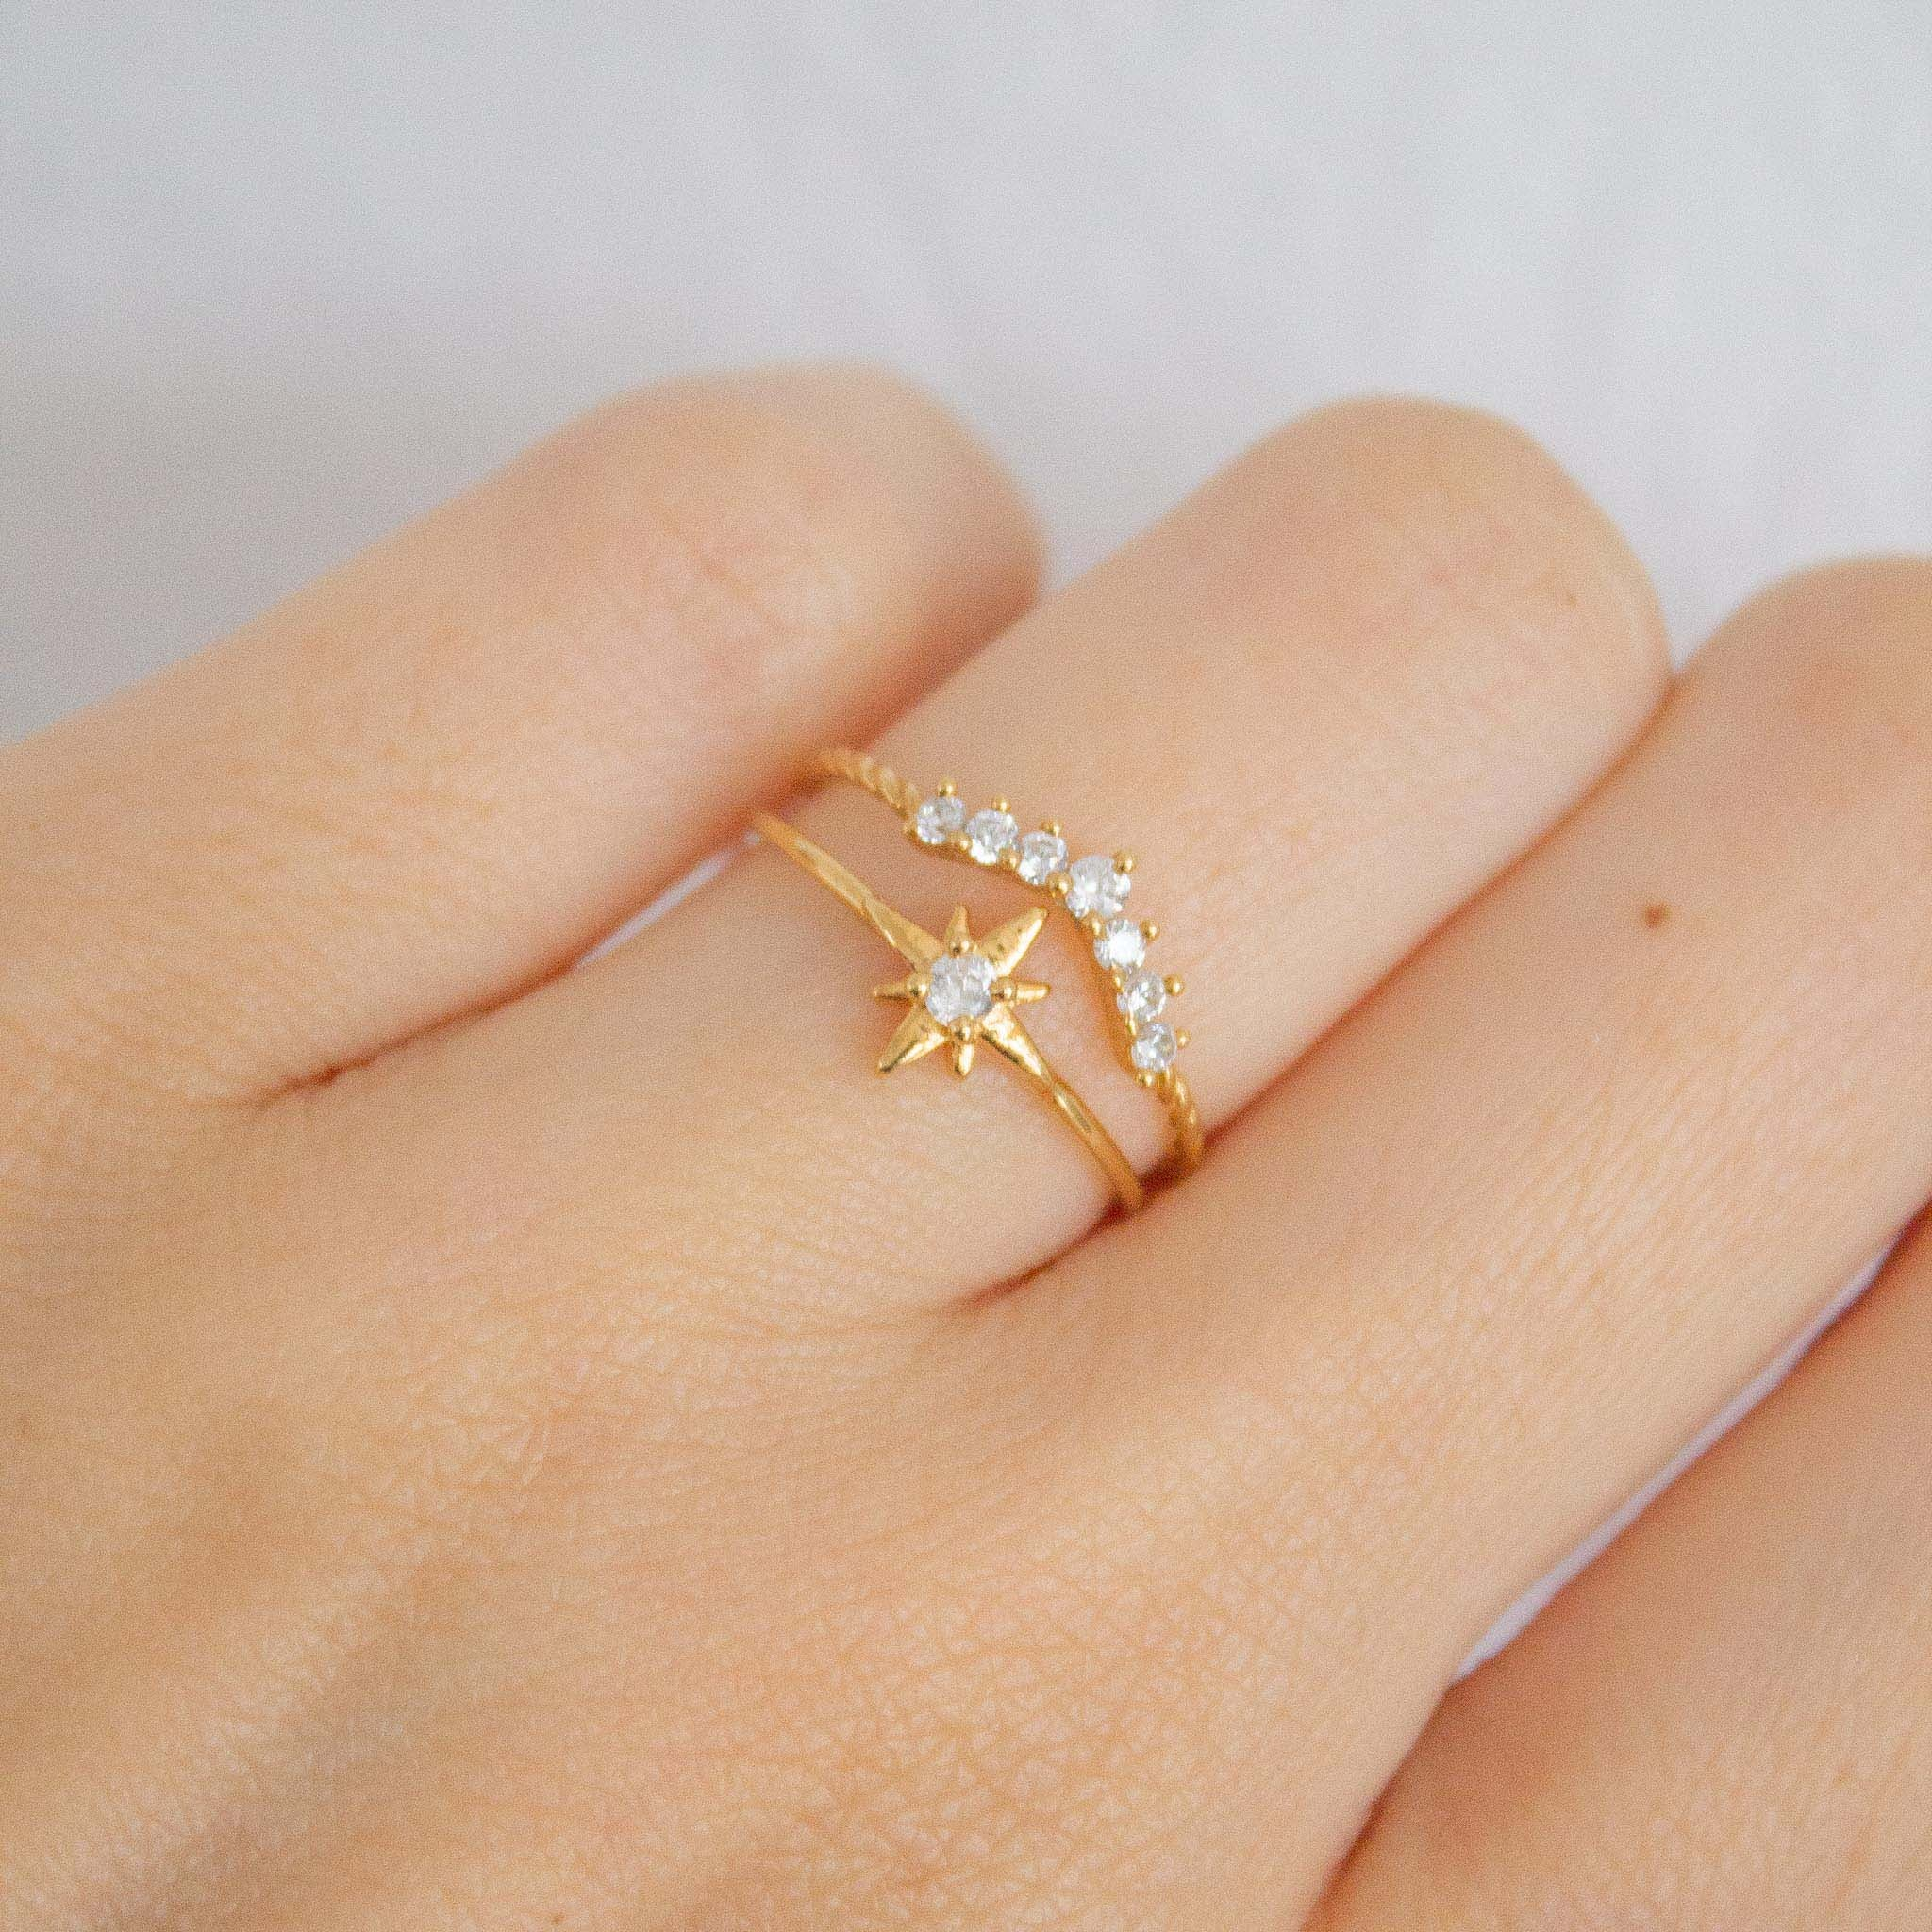 Ring stacking ideas